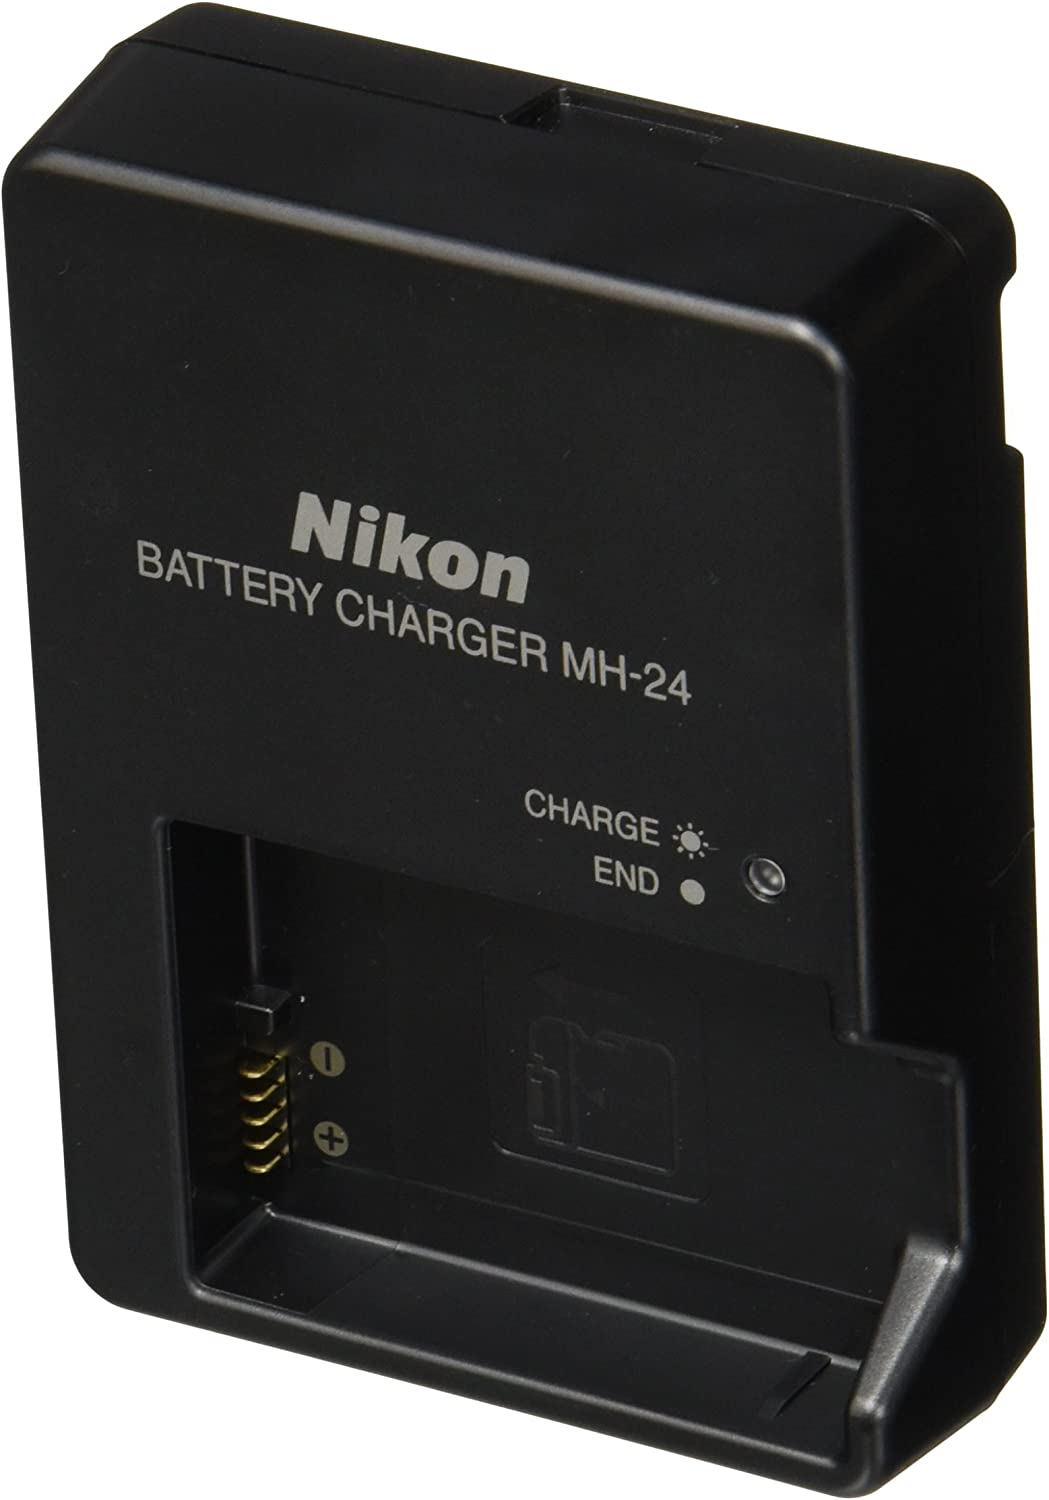 Nikon MH-24 Quick Charger for EN-EL14 Li-ion Battery